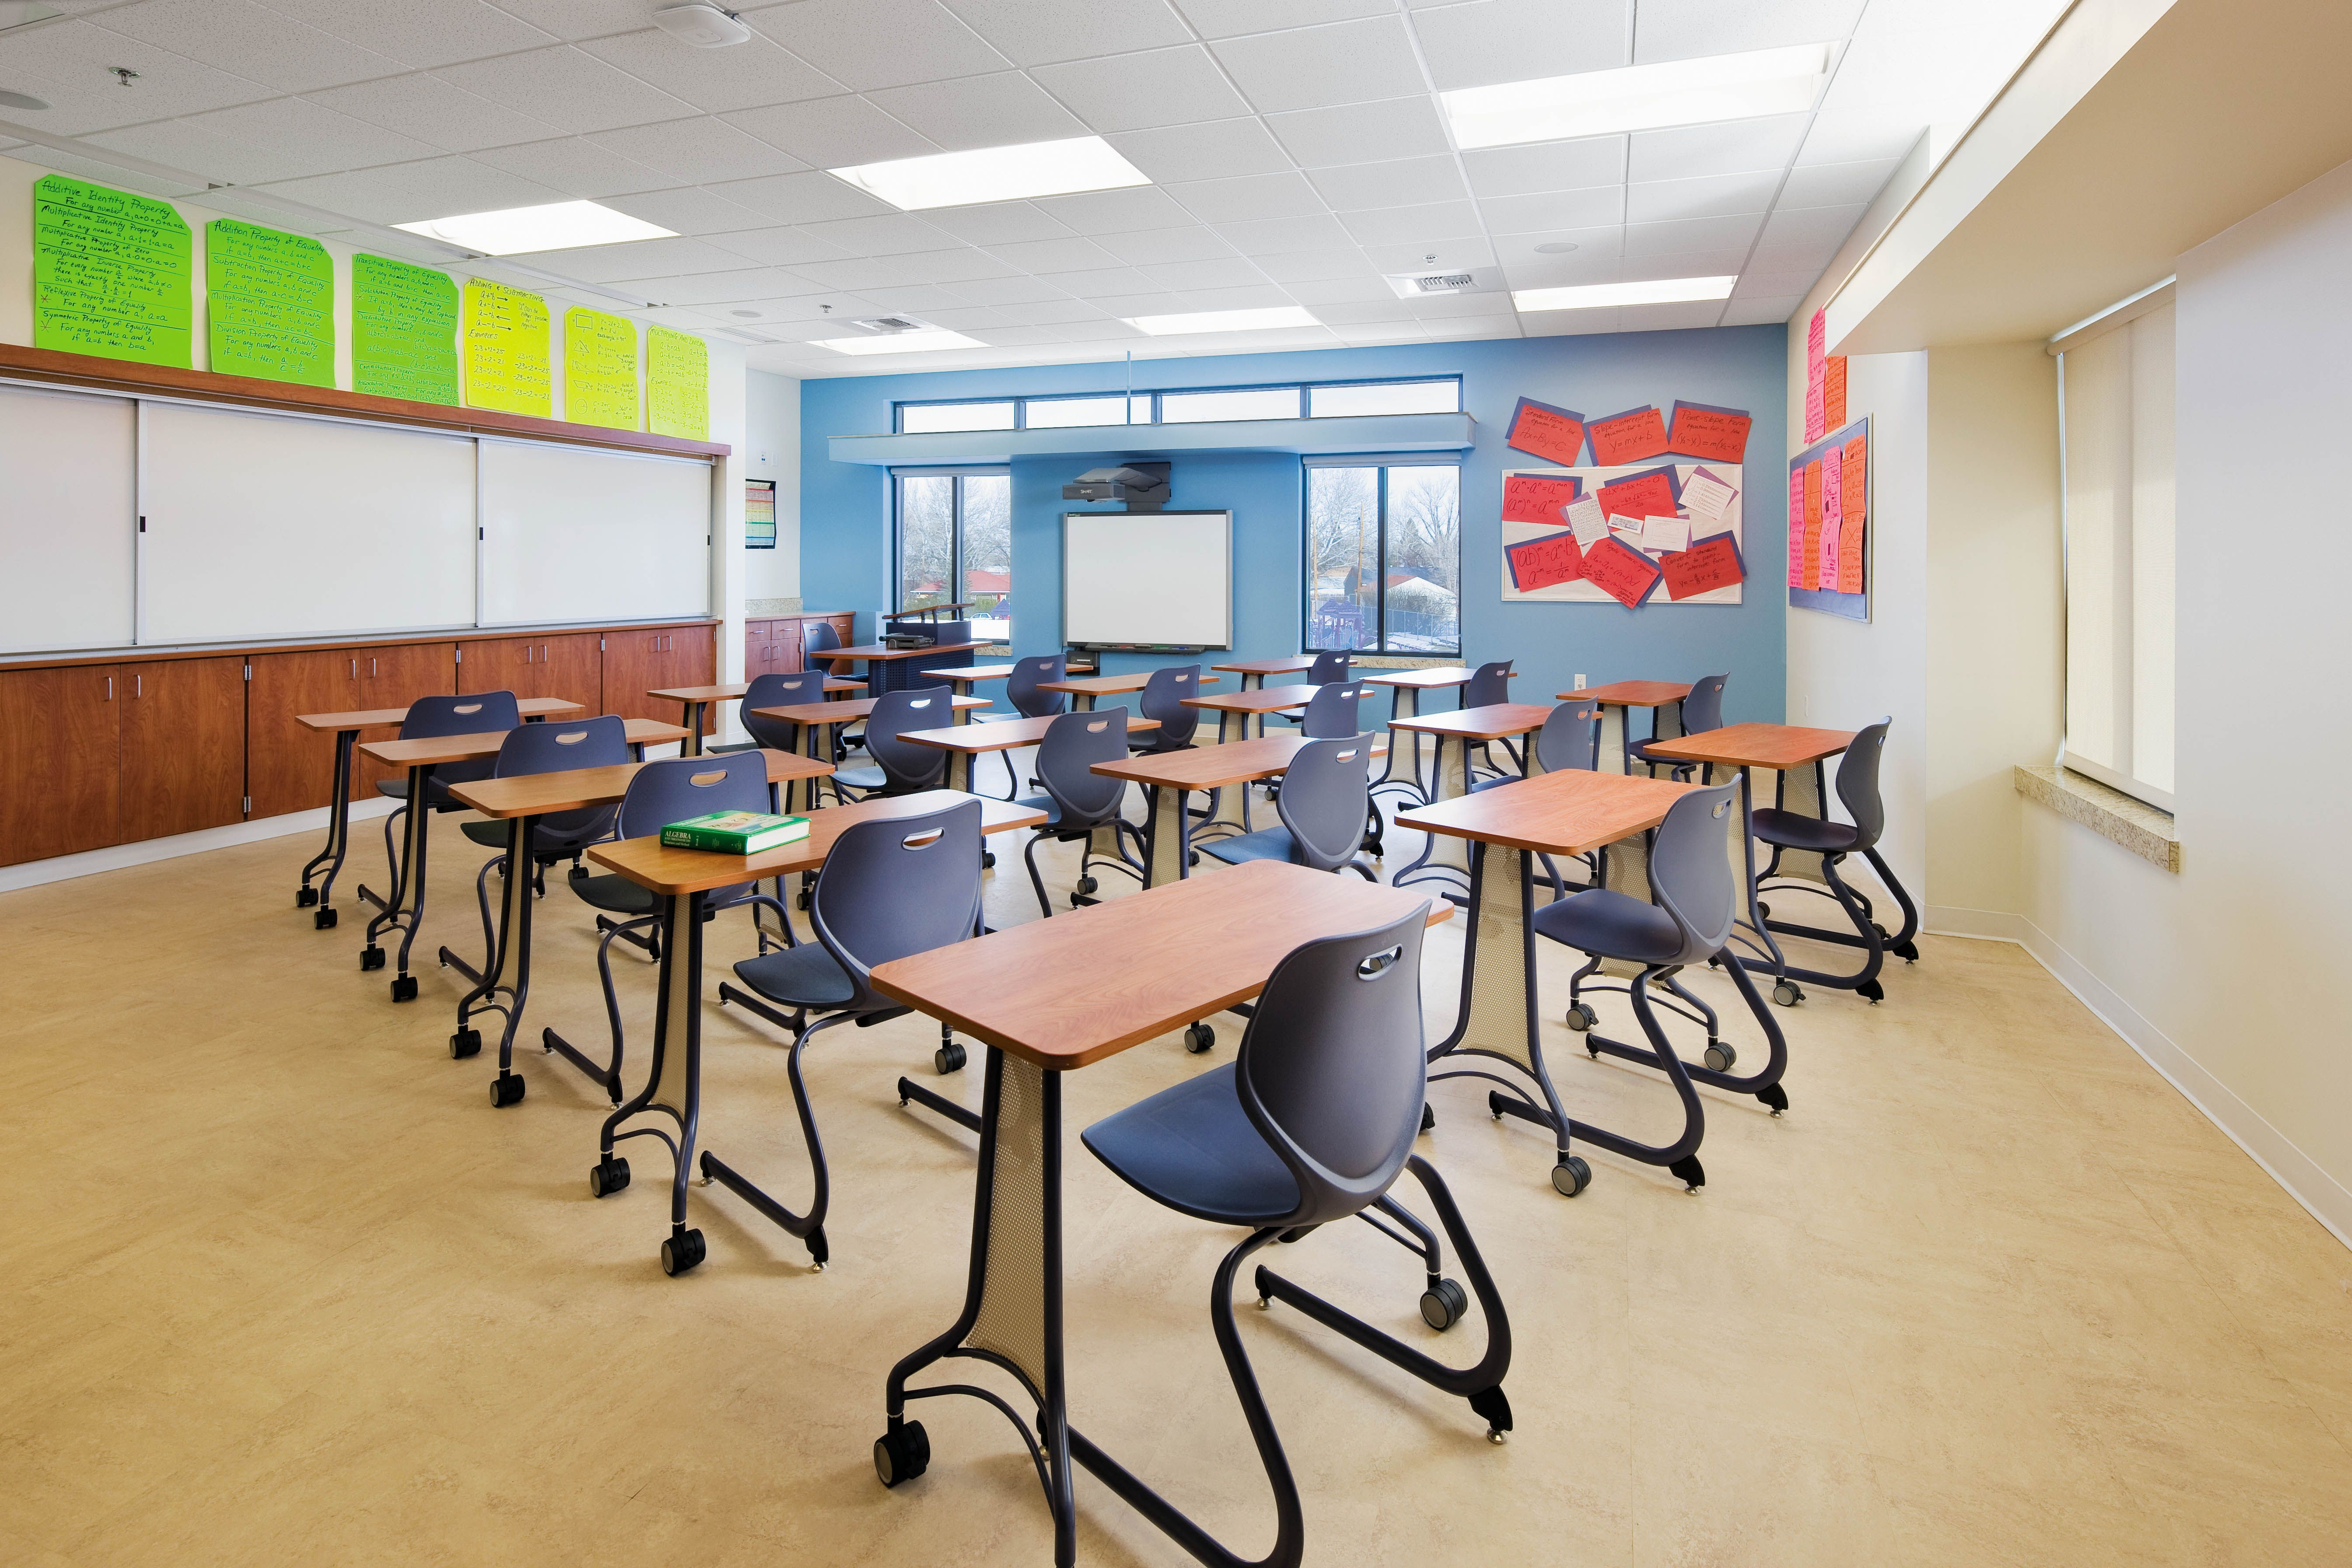 Gentil KI Is The #1 Supplier Of Educational Furniture Solutions. Here Is KIu0027s  Intellect Wave